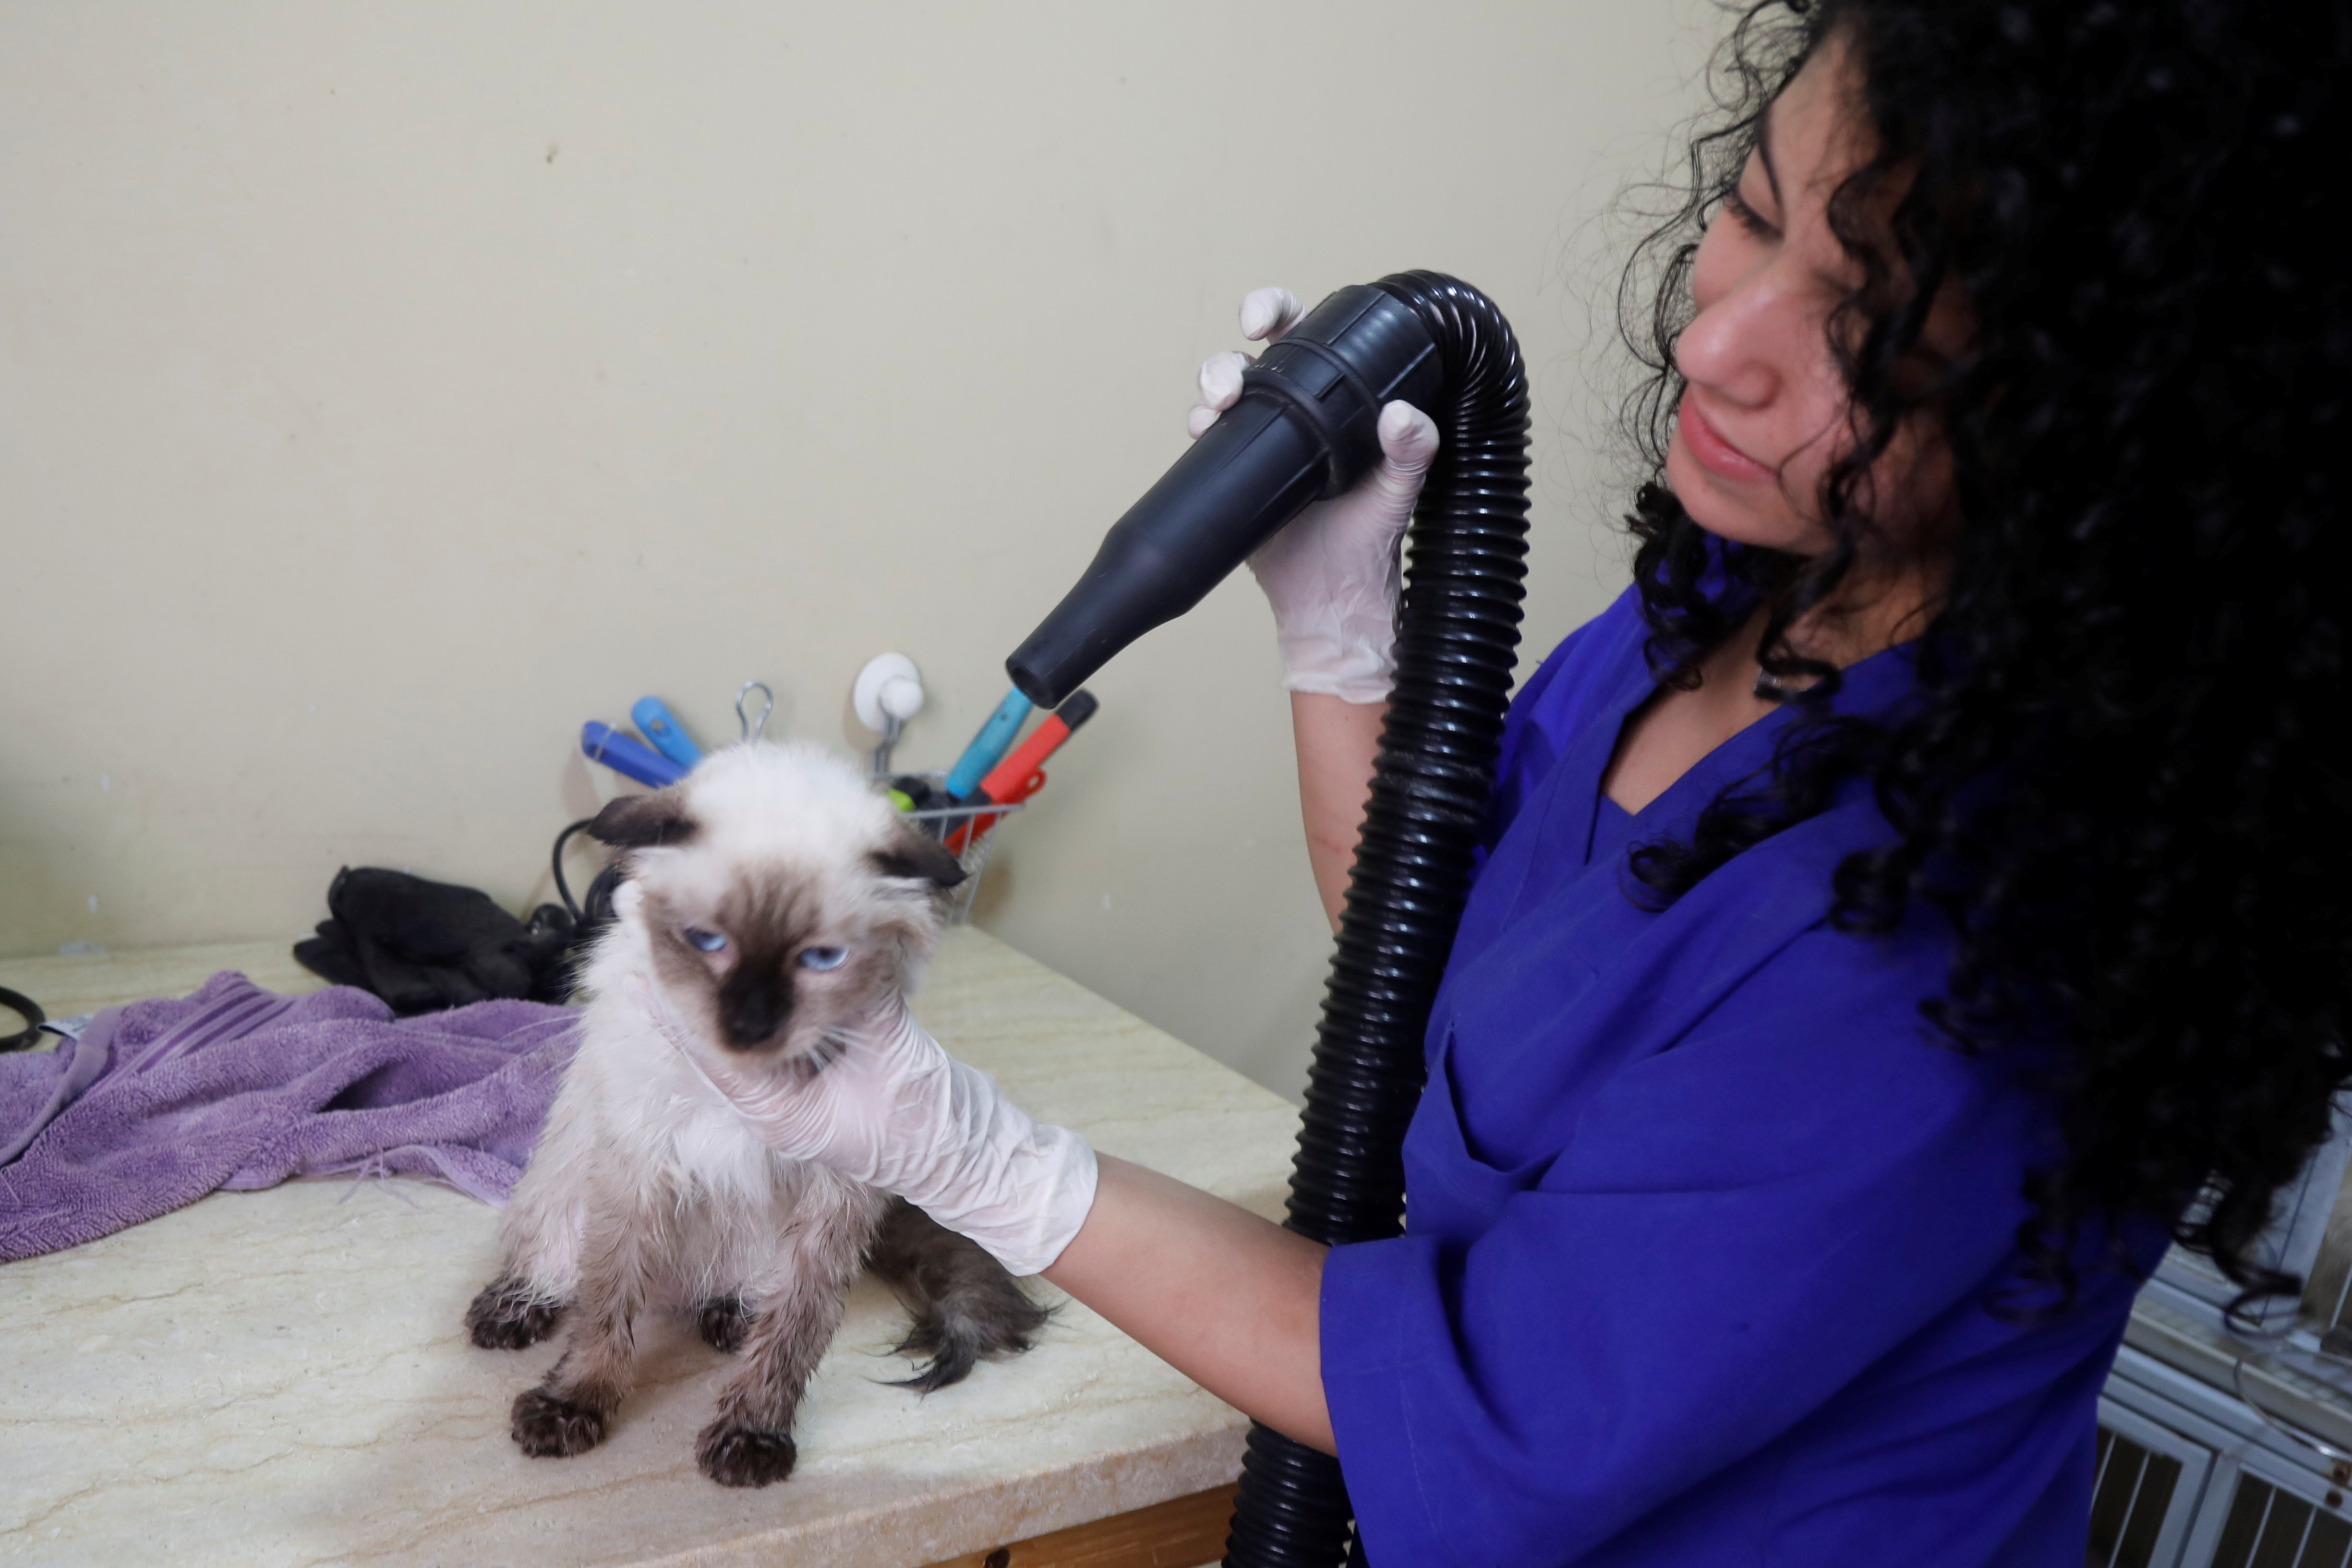 A staff member blow-dries a cat's hair after a bath at Royal Care Vet Clinic that offers animals medical and grooming care, in Nablus, the Israeli-occupied West Bank, September 7, 2021.  REUTERS/Raneen Sawafta